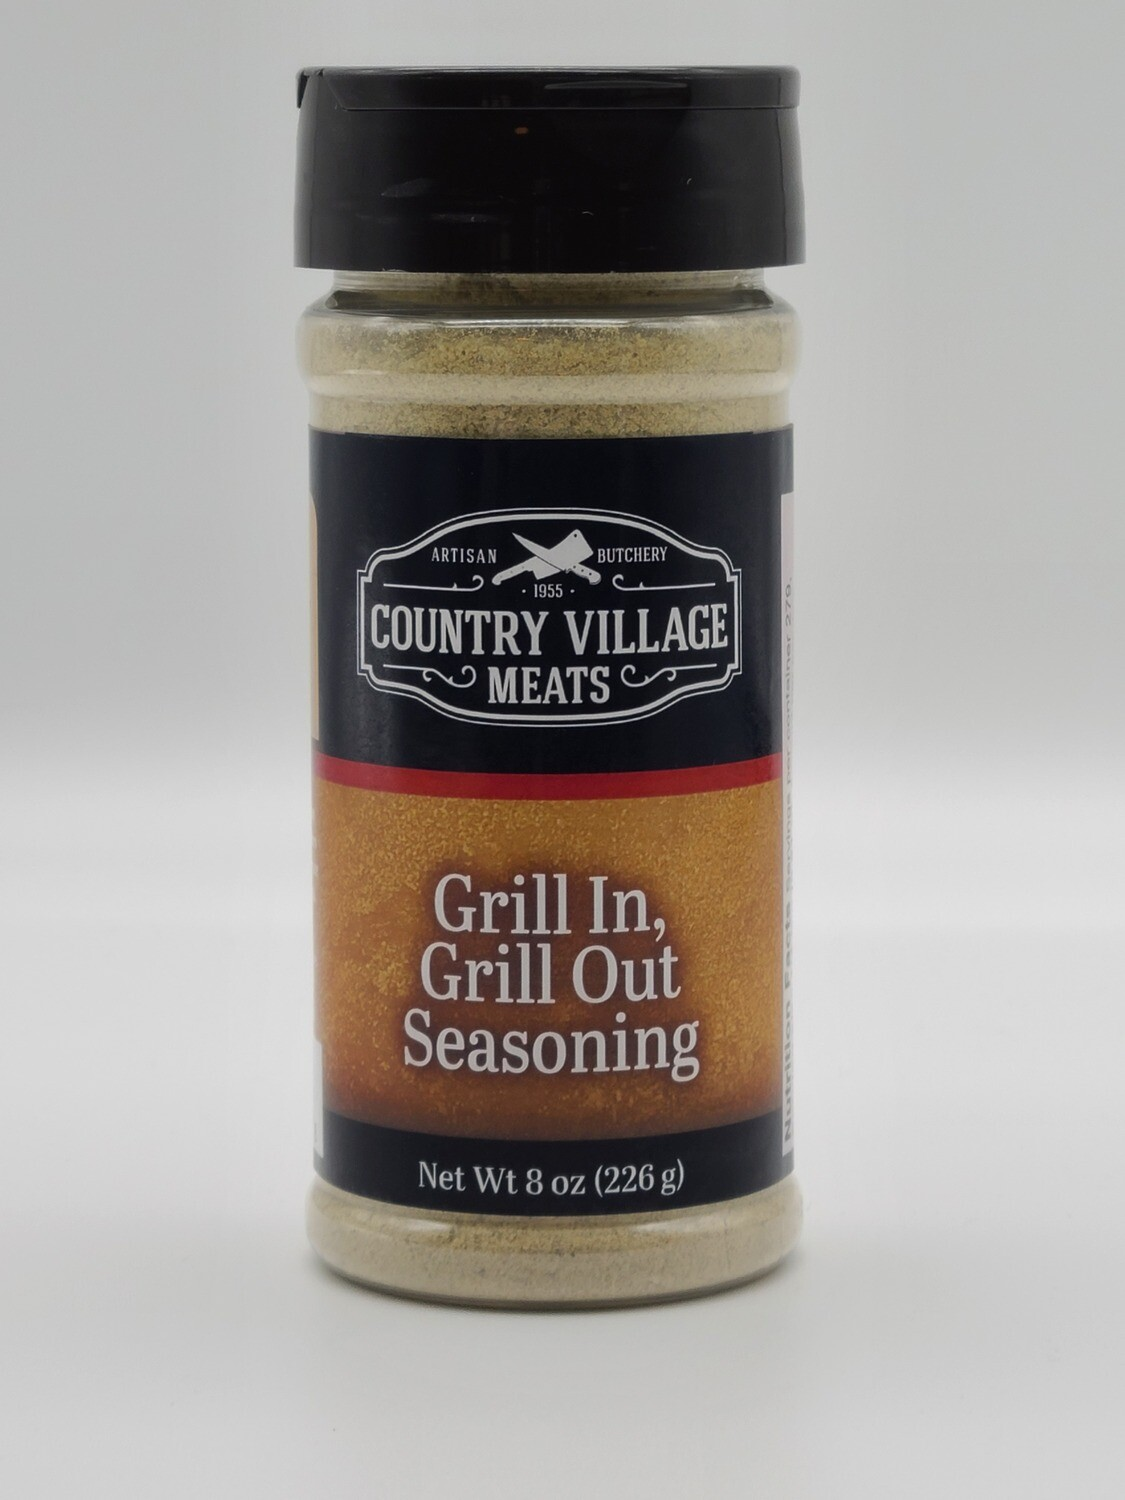 Country Village Meats - Grill In Grill Out 8 oz. Seasoning